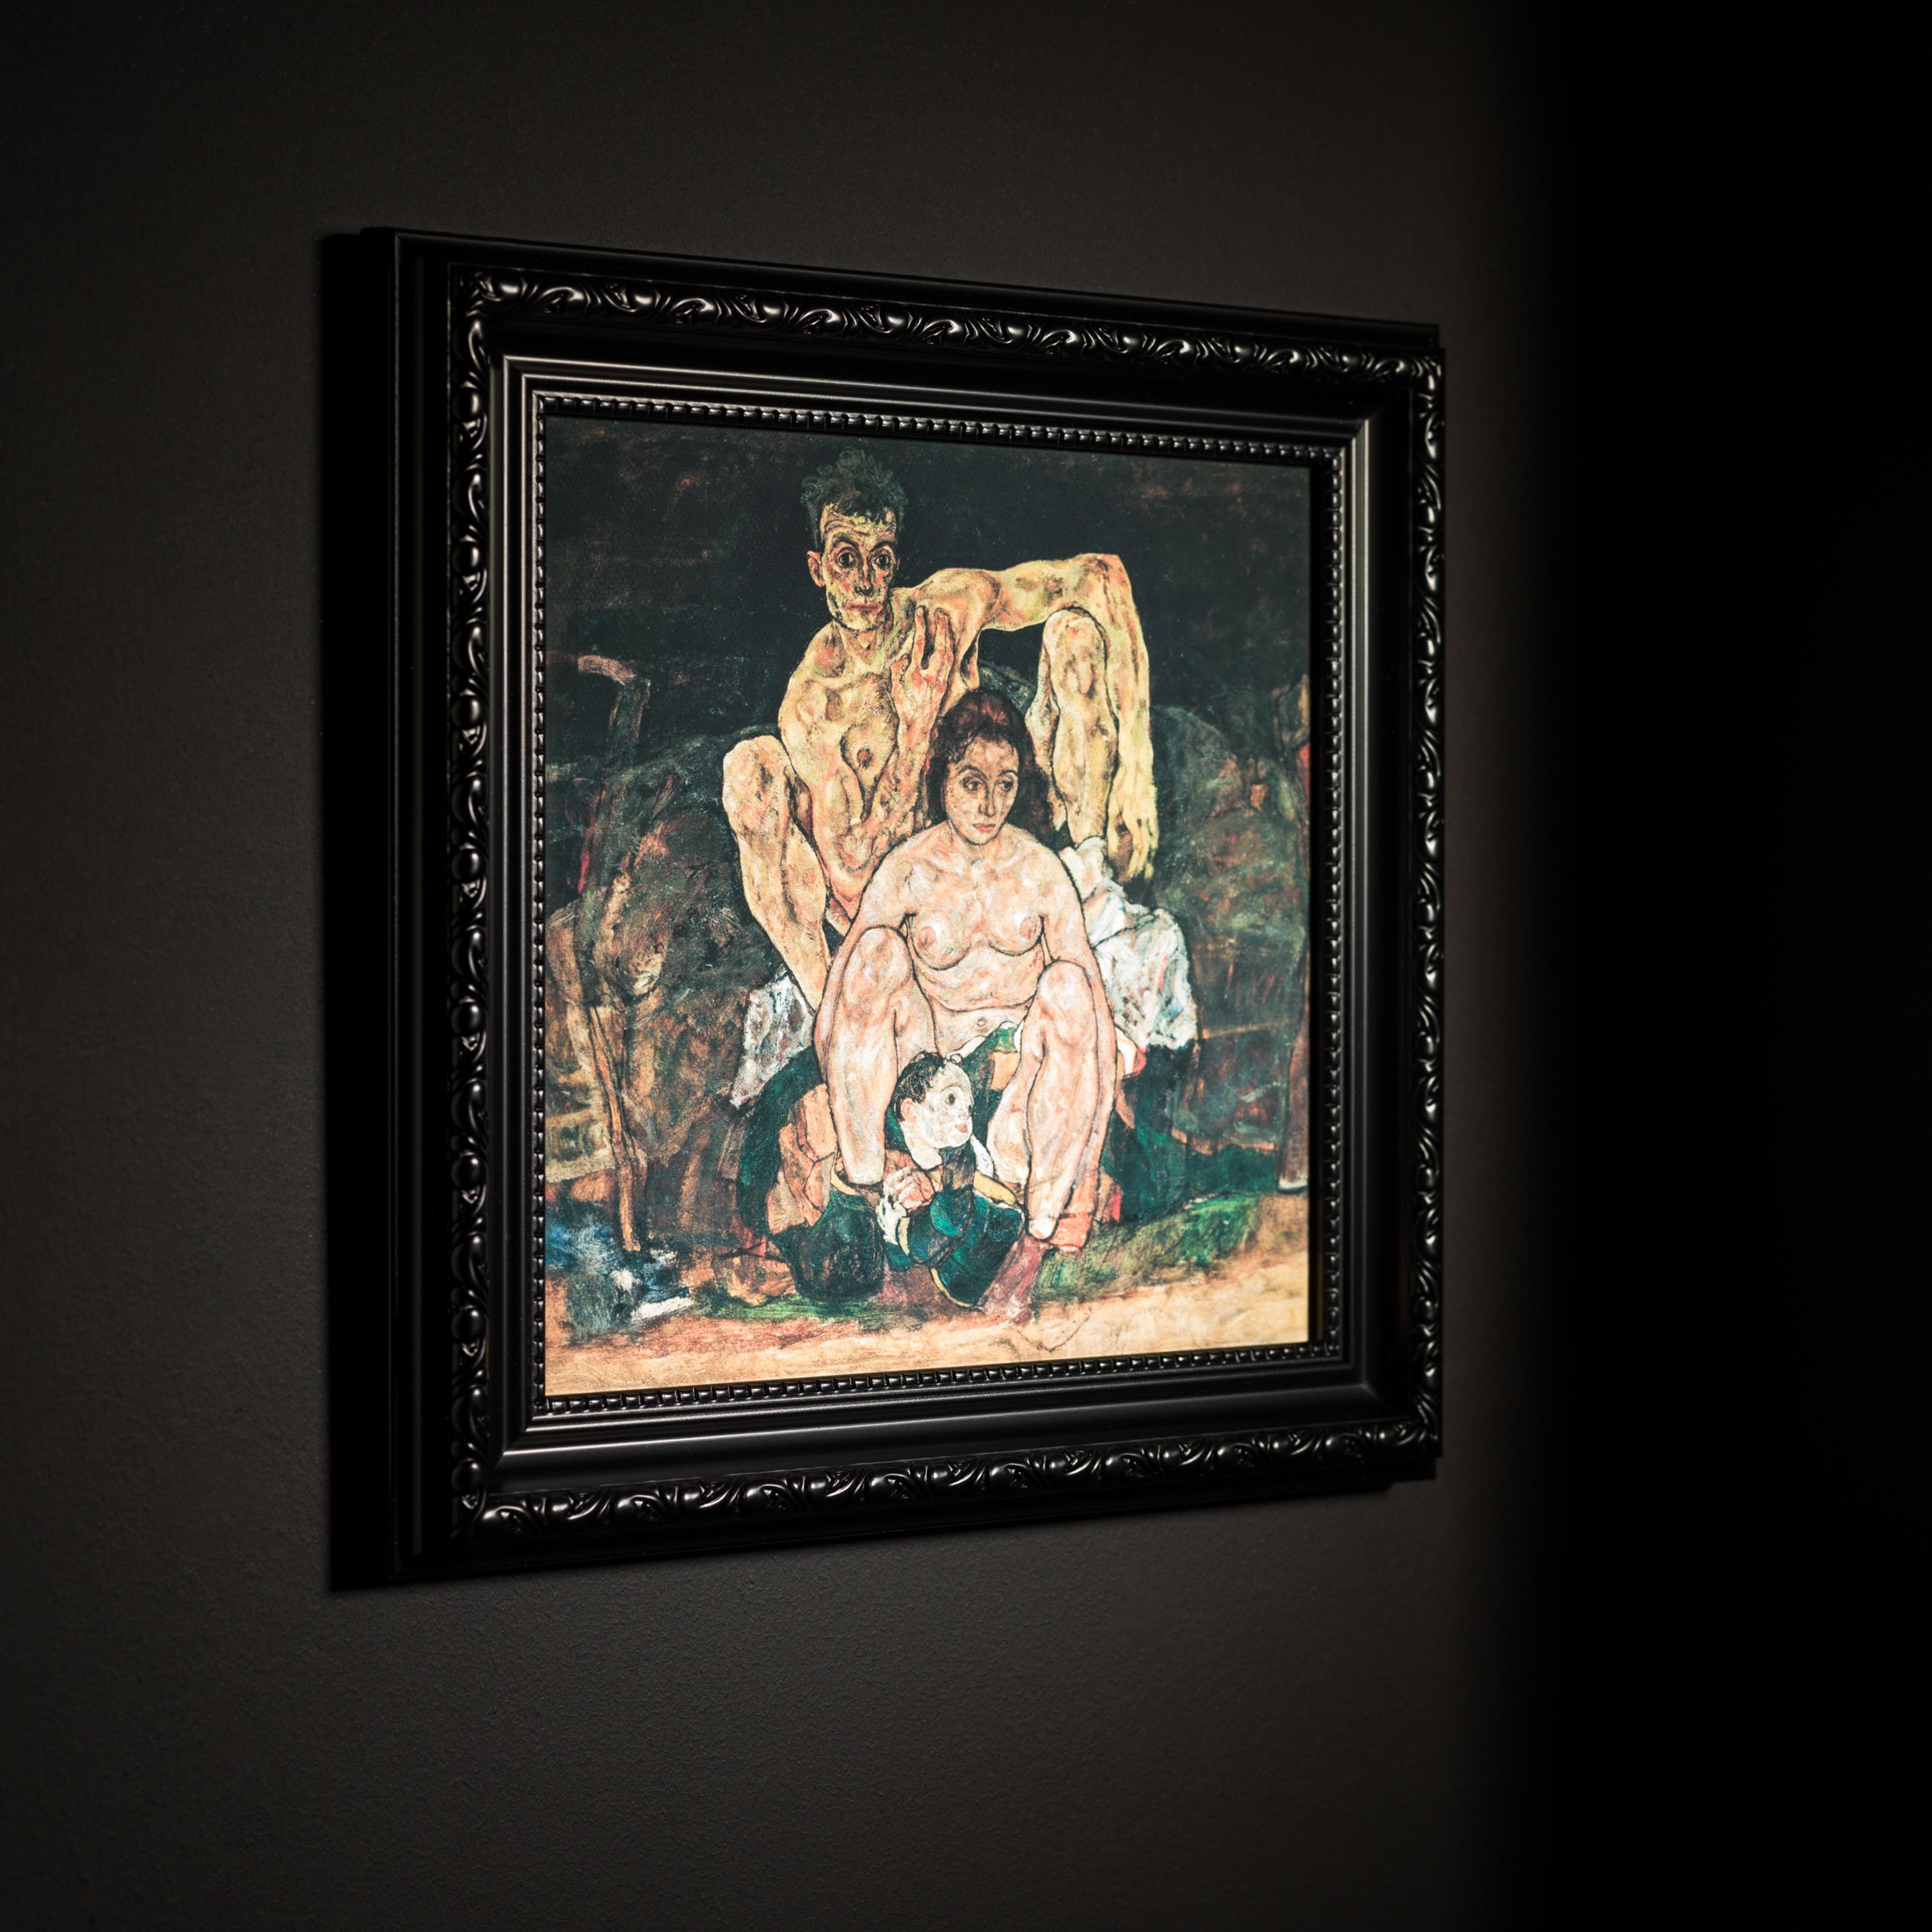 Photograph black ornate picture frame hung on a black wall. Inside the frame is a print of an oil painting by Egon Schiele titled, 'The Family'. It depicts  Schiele himself at the far back, his sinewy nude body hunched behind his wife, Edith, who looks off to the side, while a child is curled between her feet.